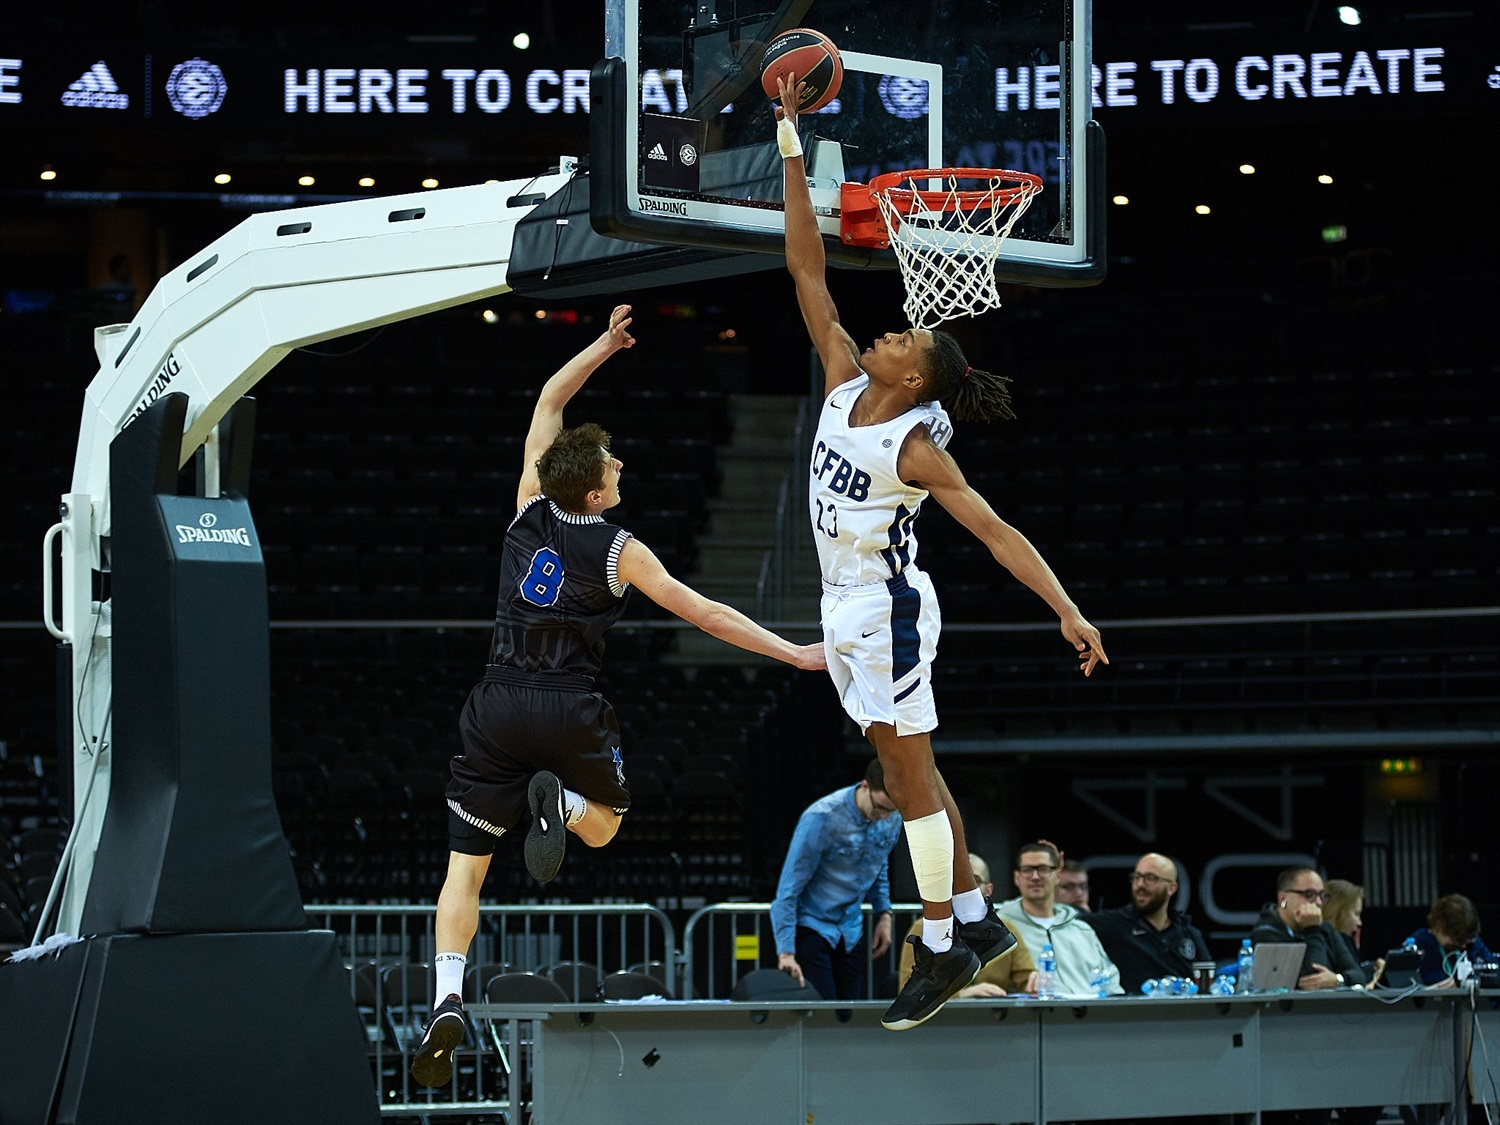 Juhann Begarin - U18 CFBB Paris (photo Zalgiris) - JT18